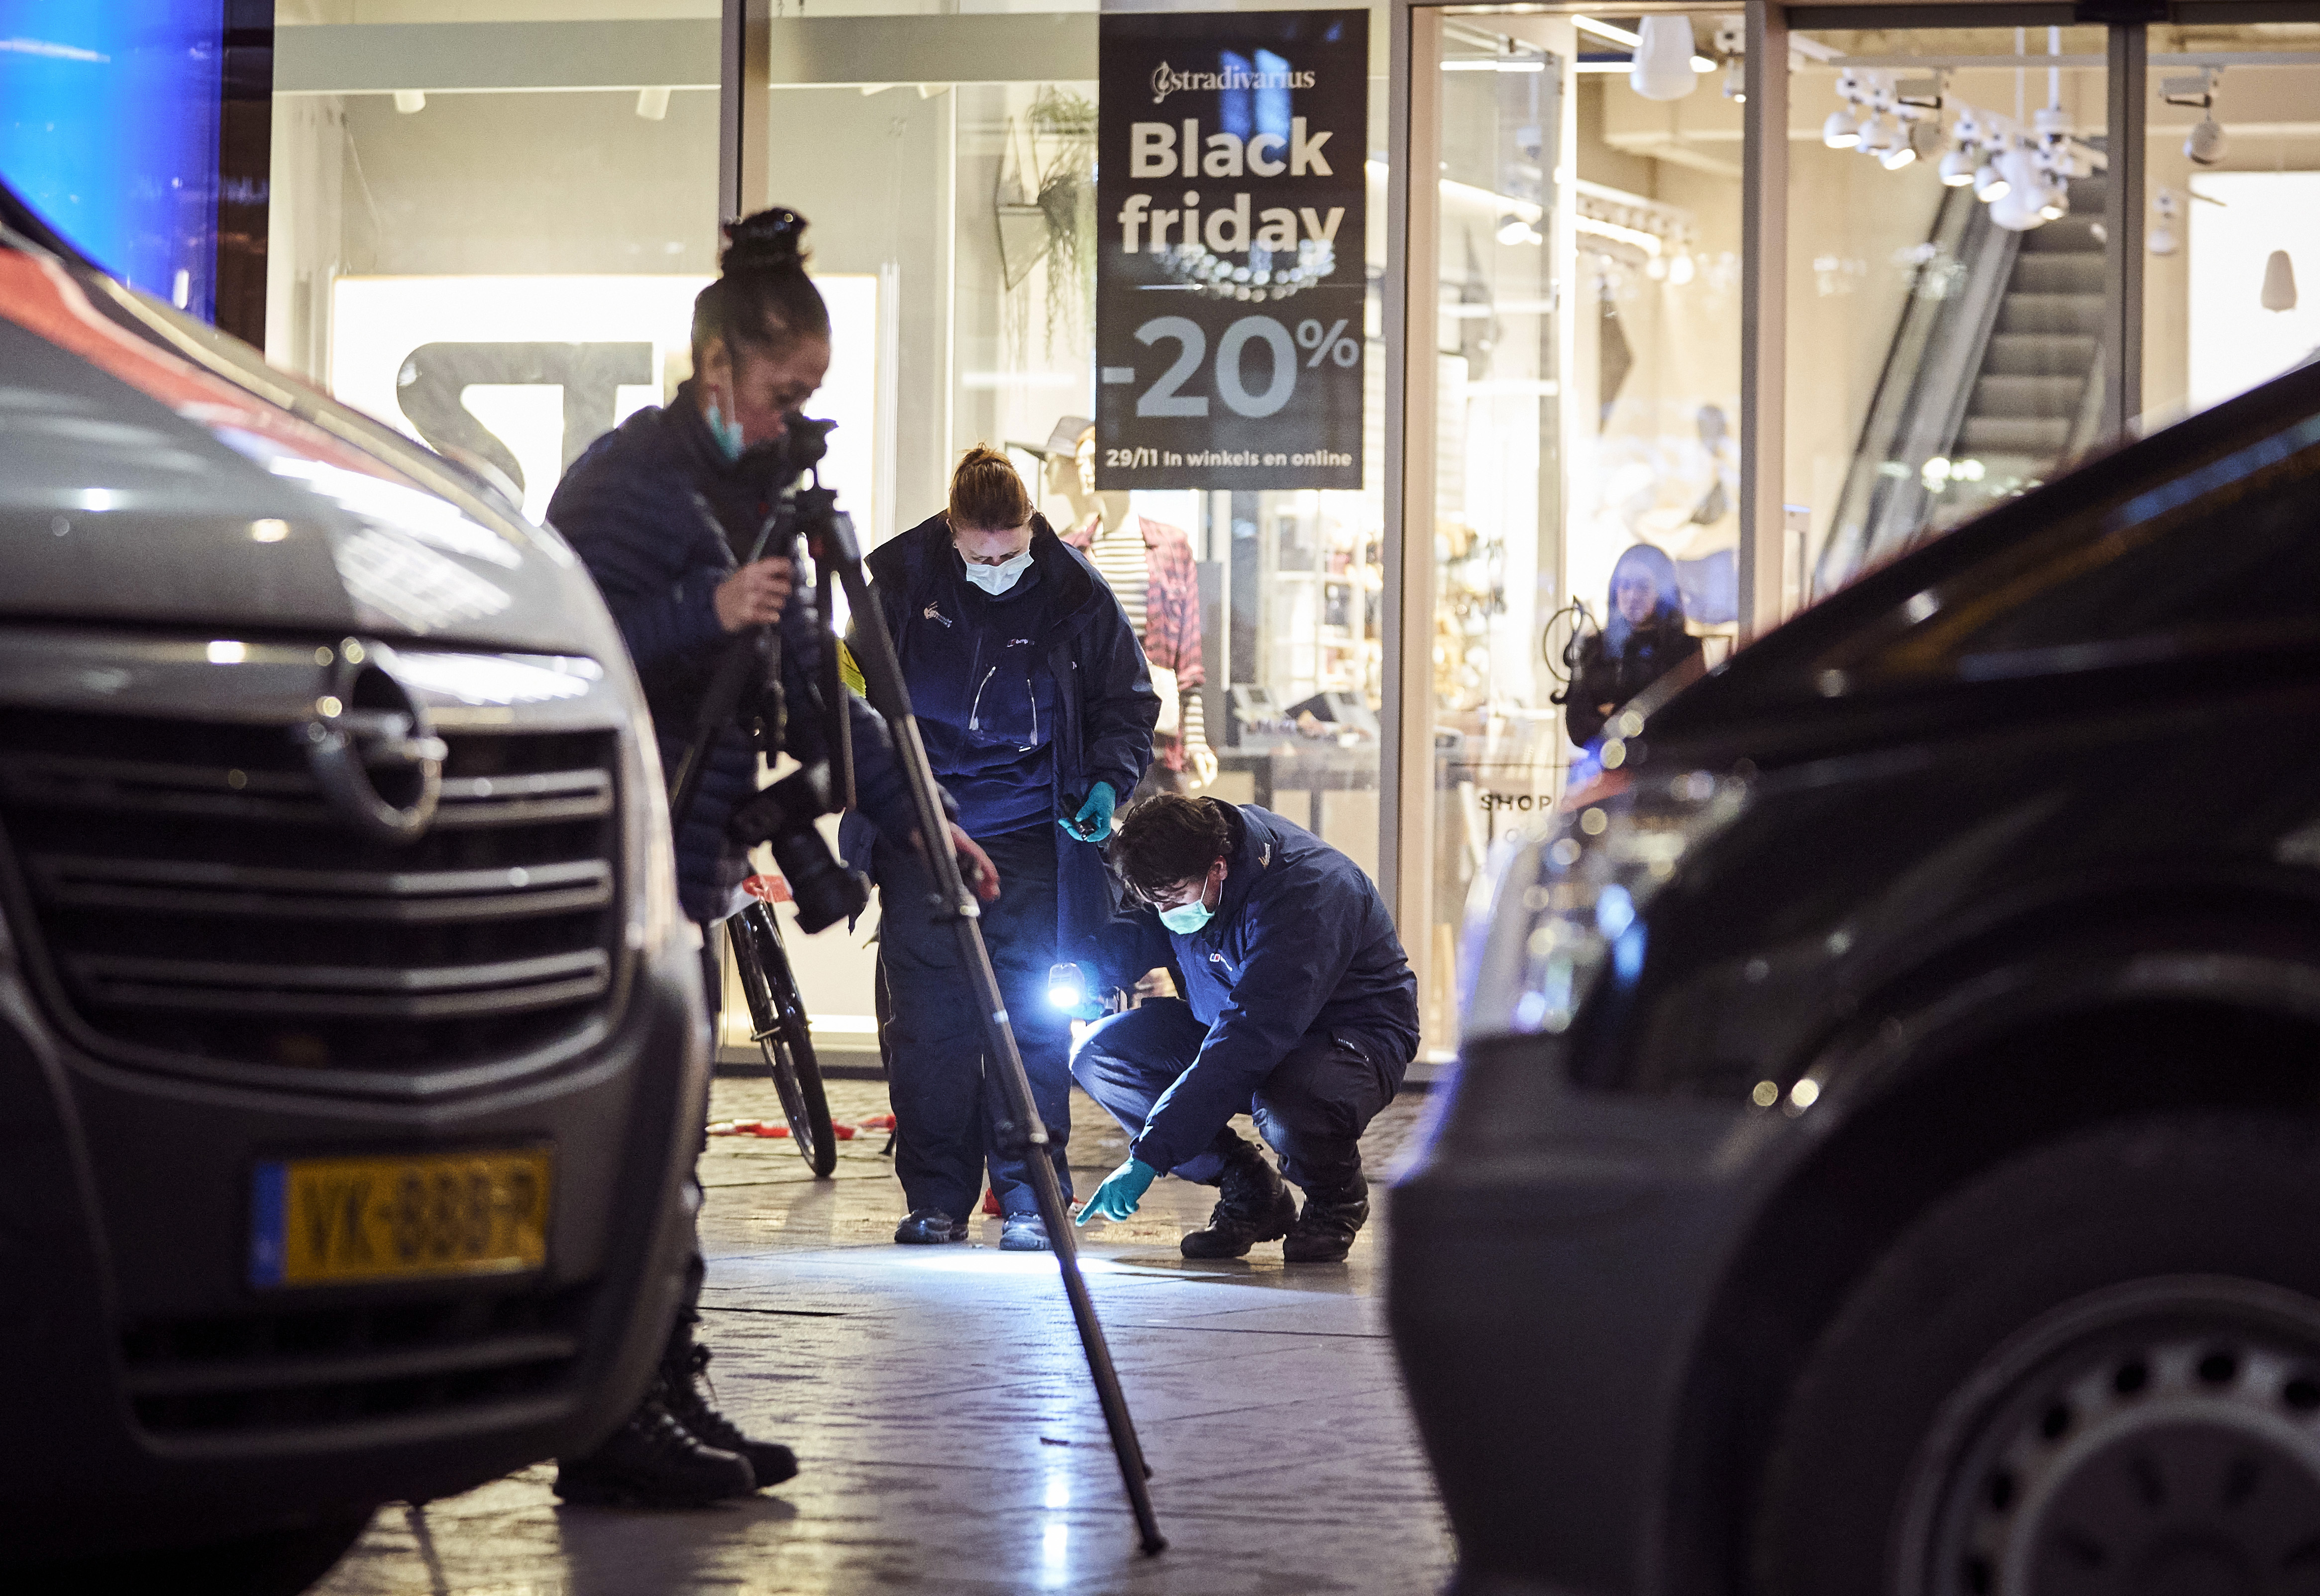 Forensic experts look for clues on the scene of a stabbing incident in the center of The Hague, Netherlands, Friday, Nov. 29, 2019.